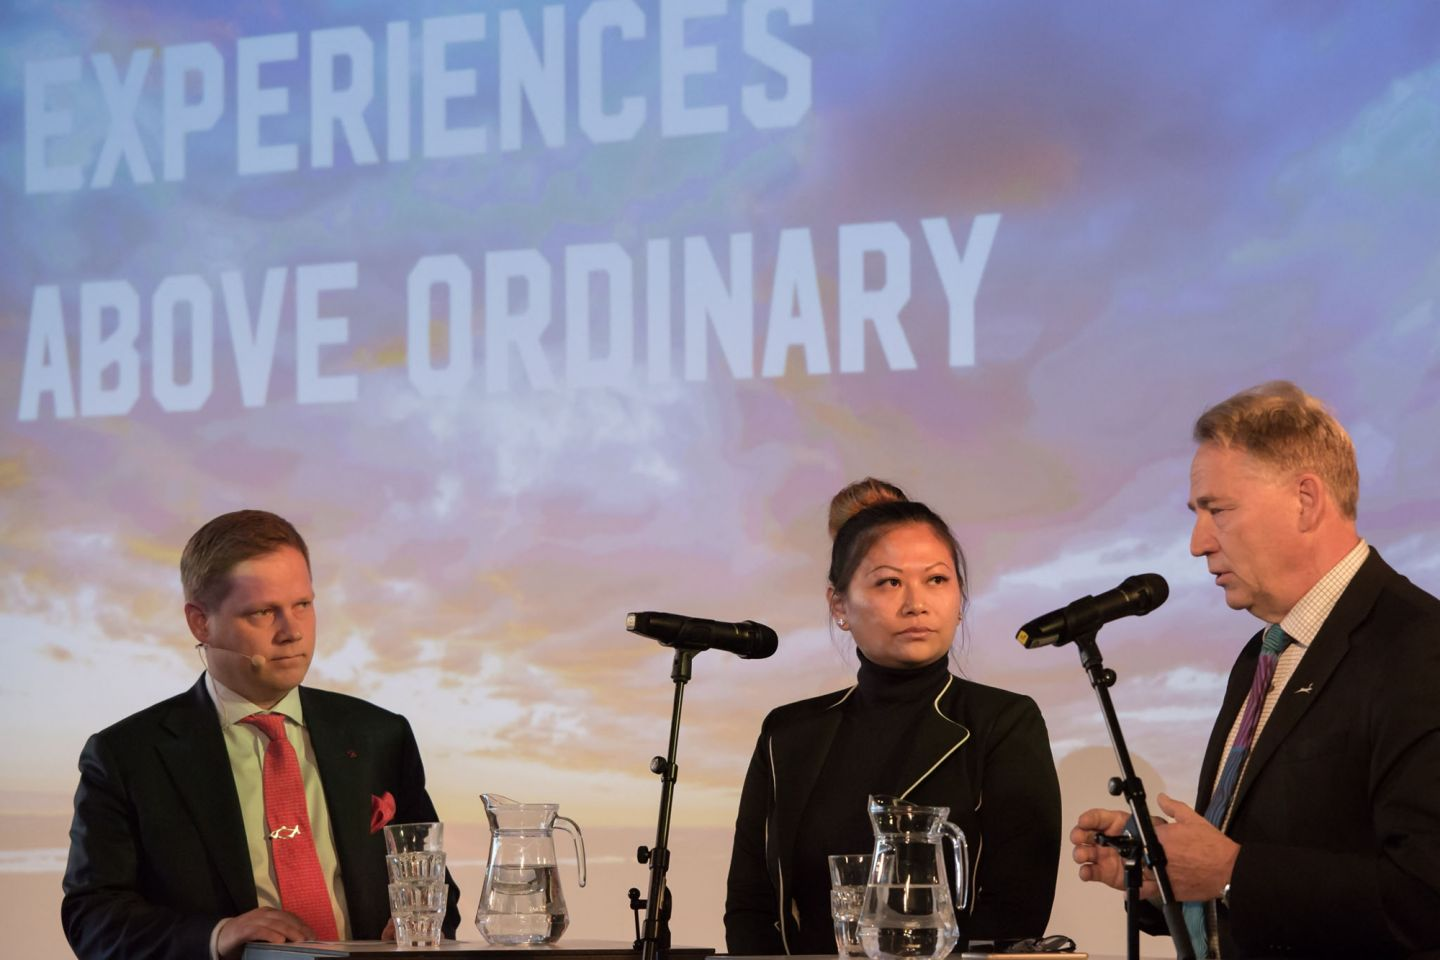 Pohjoinen means business arctic railway panel